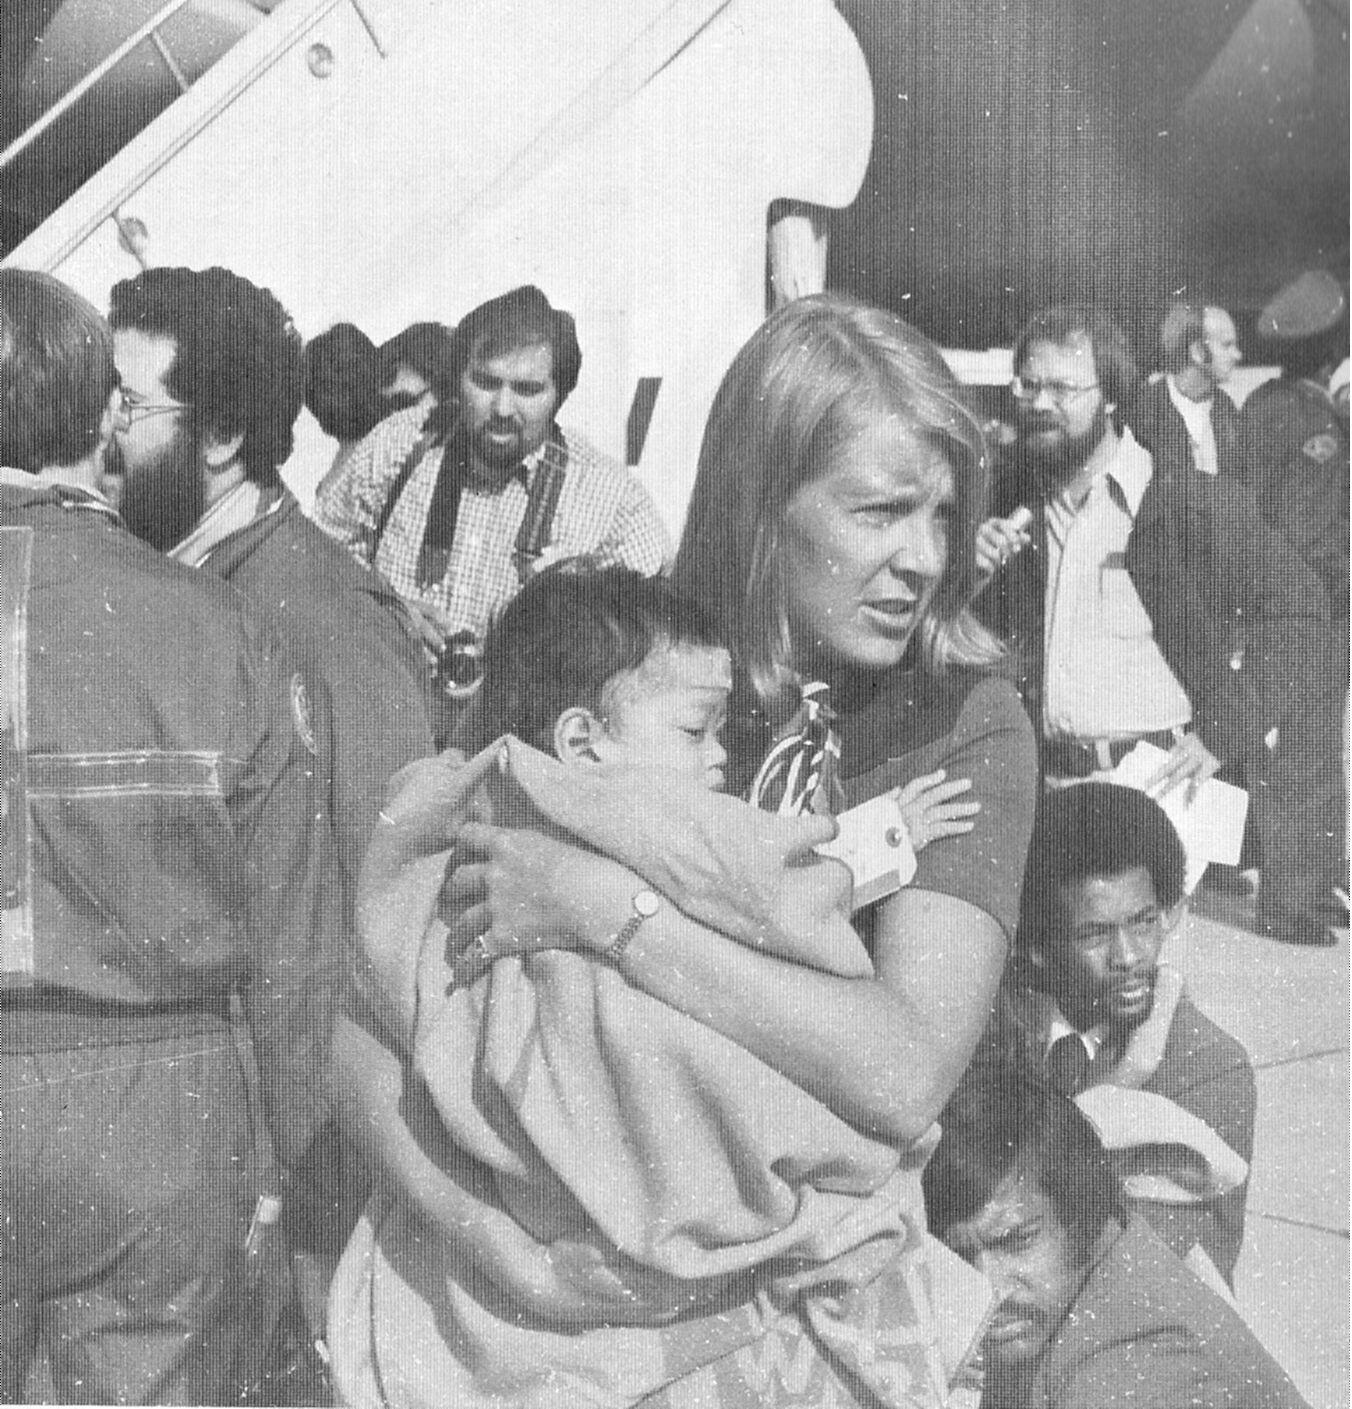 Denise Crawford of the U.S. Customs Service holds a Vietnamese refugee. Between April 26 and May 30, 1975, military customs inspectors-under the supervision of U.S. Customs advisors-processed more than 60,000 U.S.-bound Vietnamese refugees at Guam and Subic Bay, the Philippines. (Update '75, U.S. Treasury)